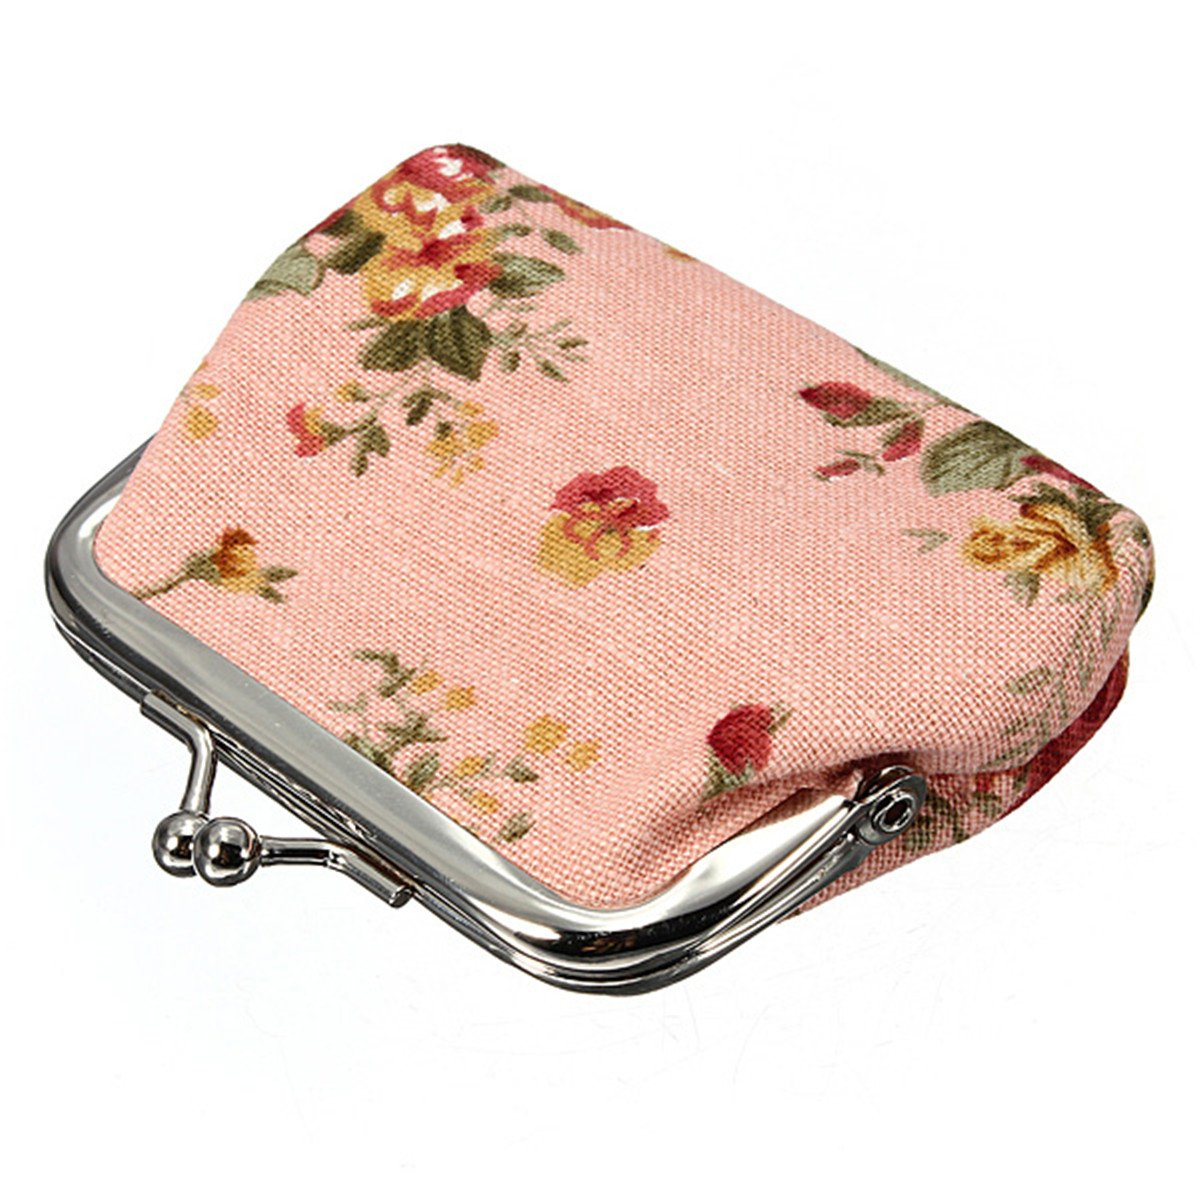 5 X SNNY 2017 Hot StyleWomen Roses Floral Fabric Clip Mini Small Coin Pocket Purse Bag Clutch